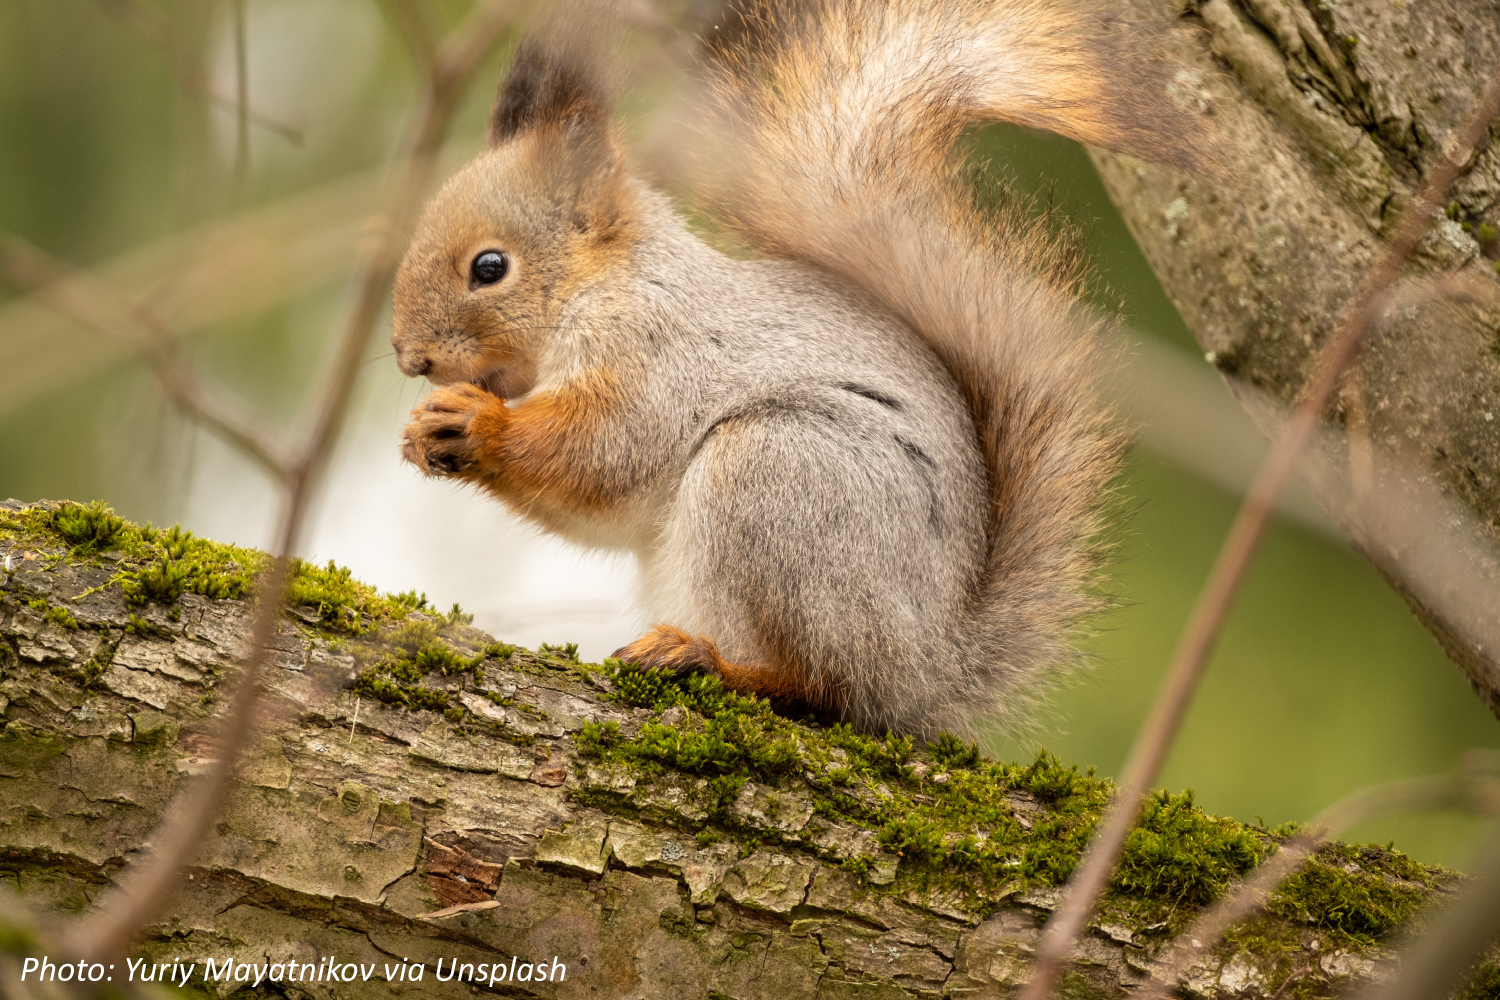 Squirreling It Away